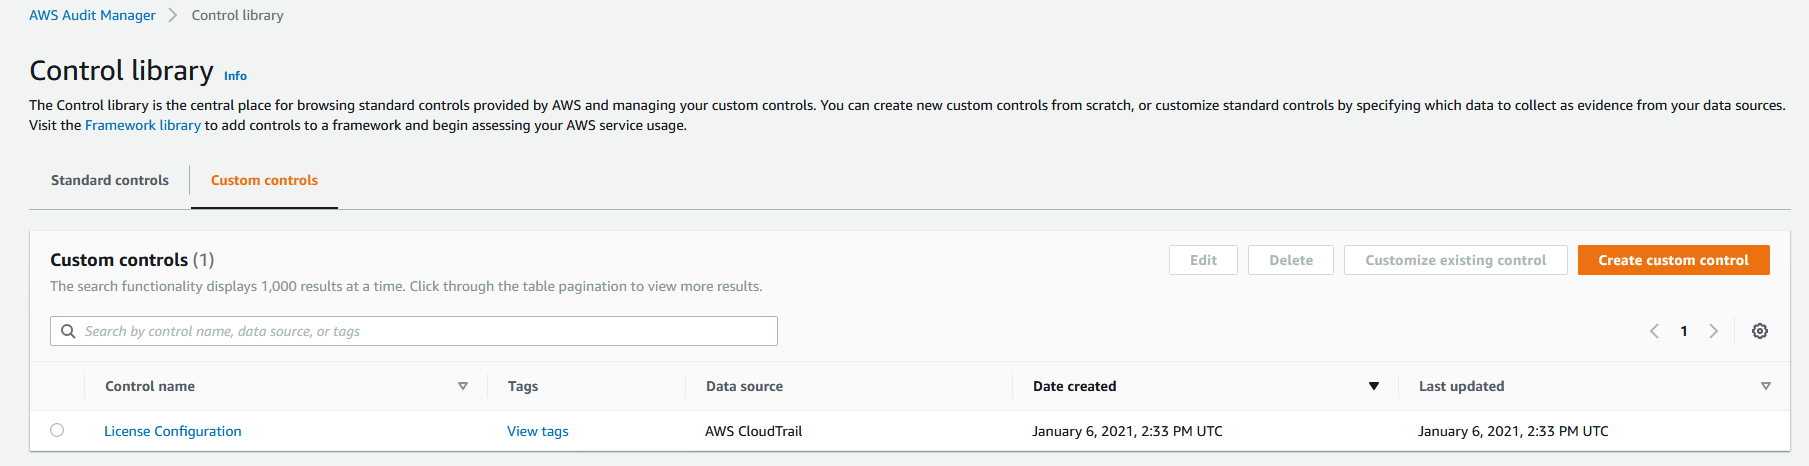 In Control library, under Custom controls, the License Configuration control is displayed. Its data source is AWS CloudTrail.